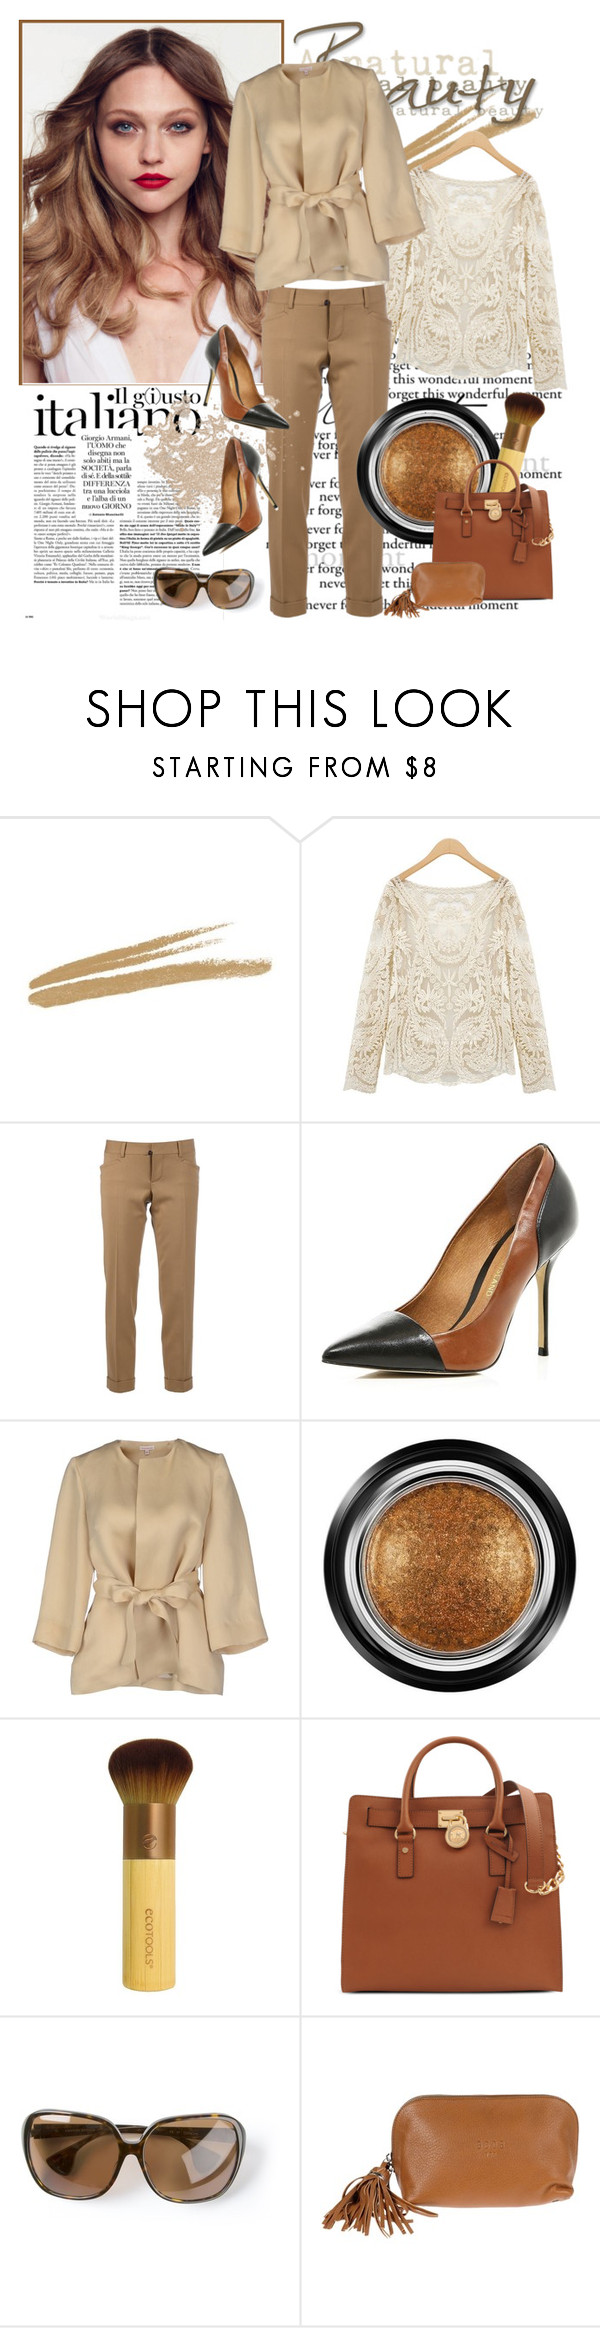 """Untitled #2126"" by ladydelicat ❤ liked on Polyvore featuring NARS Cosmetics, Dsquared2, River Island, P.A.R.O.S.H., Giorgio Armani, Michael Kors, Chrome Hearts and Golden Goose"